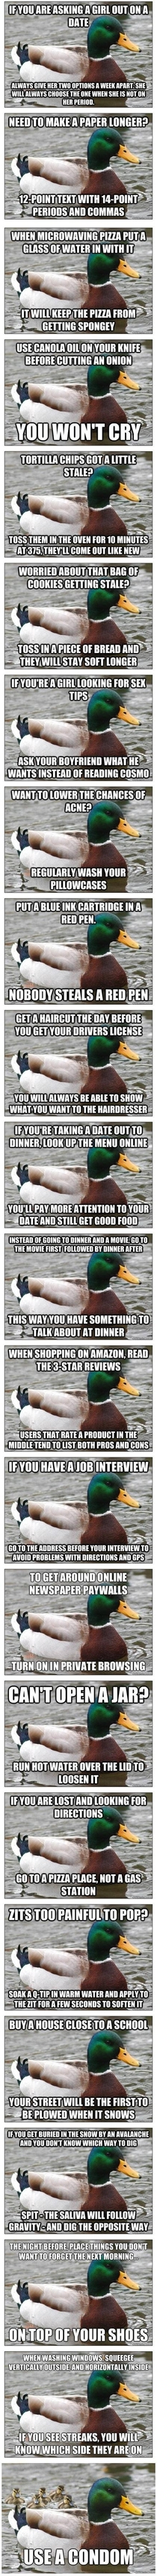 Bringing Actual Advice Mallard back to its roots